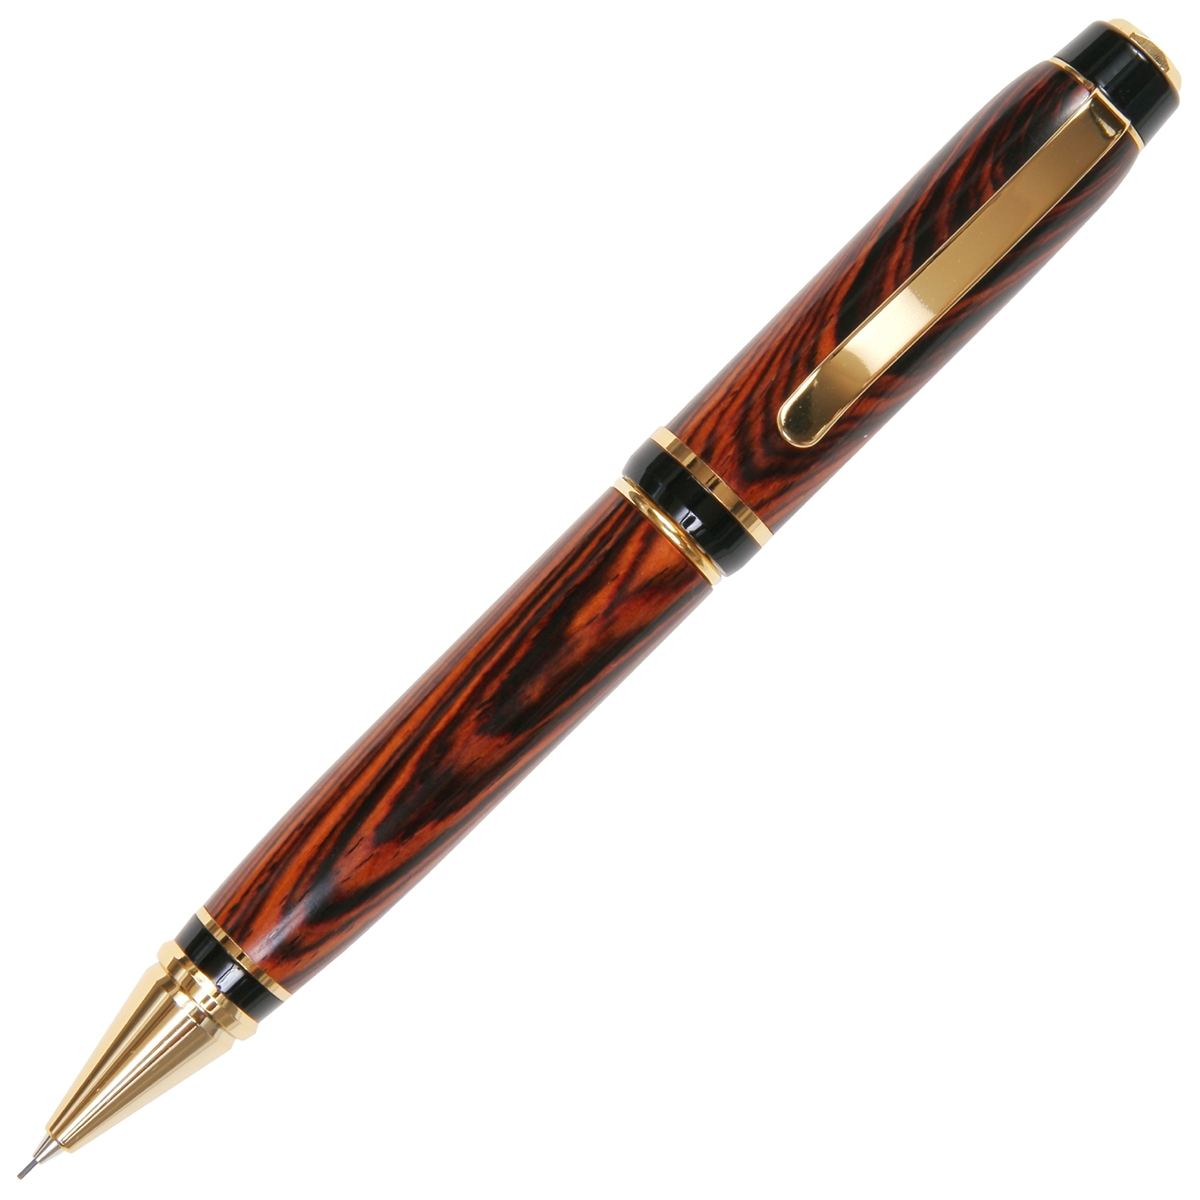 Cigar Twist Pencil - Cocobolo